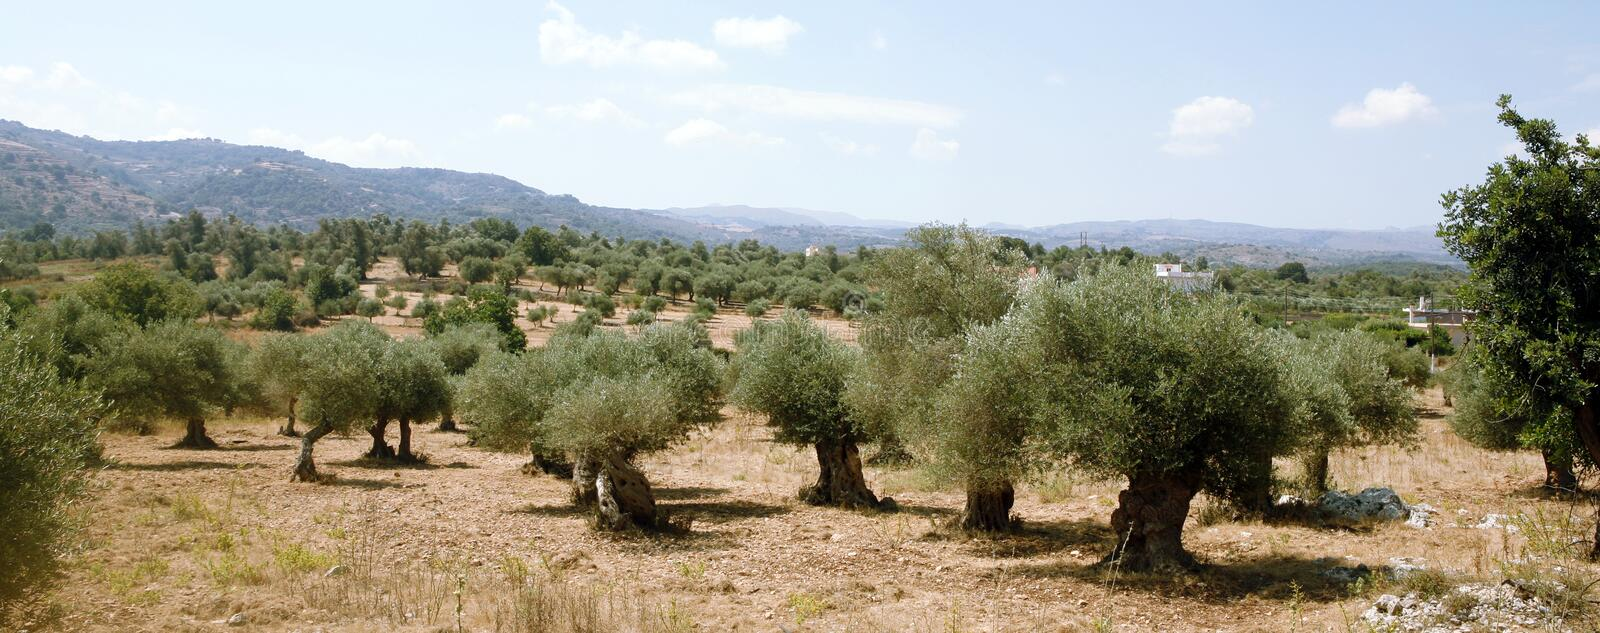 Cretan olive grove stock photo